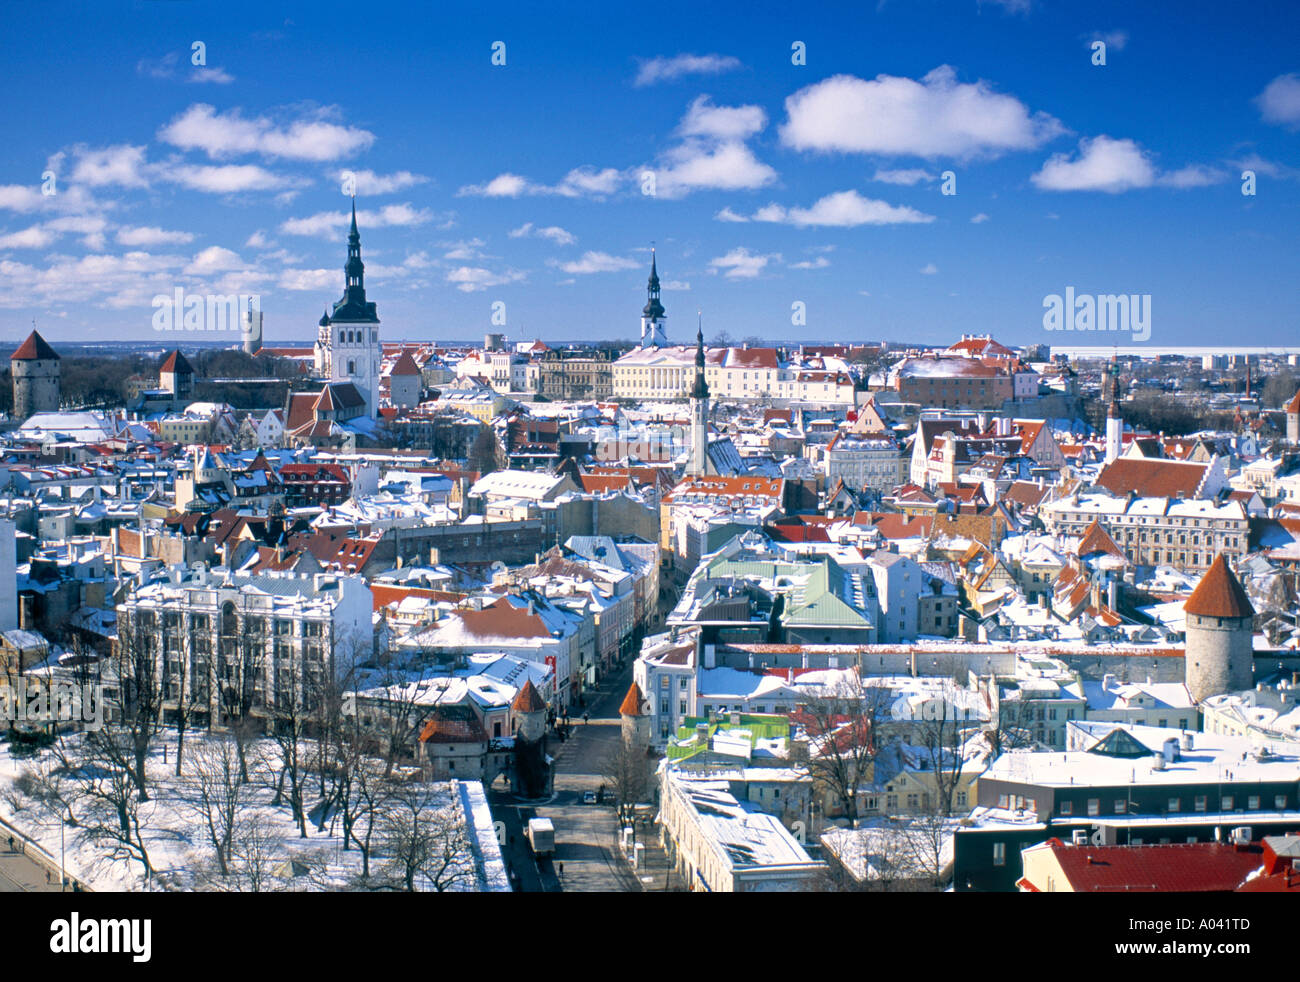 Tallinn, Estonia - Stock Image